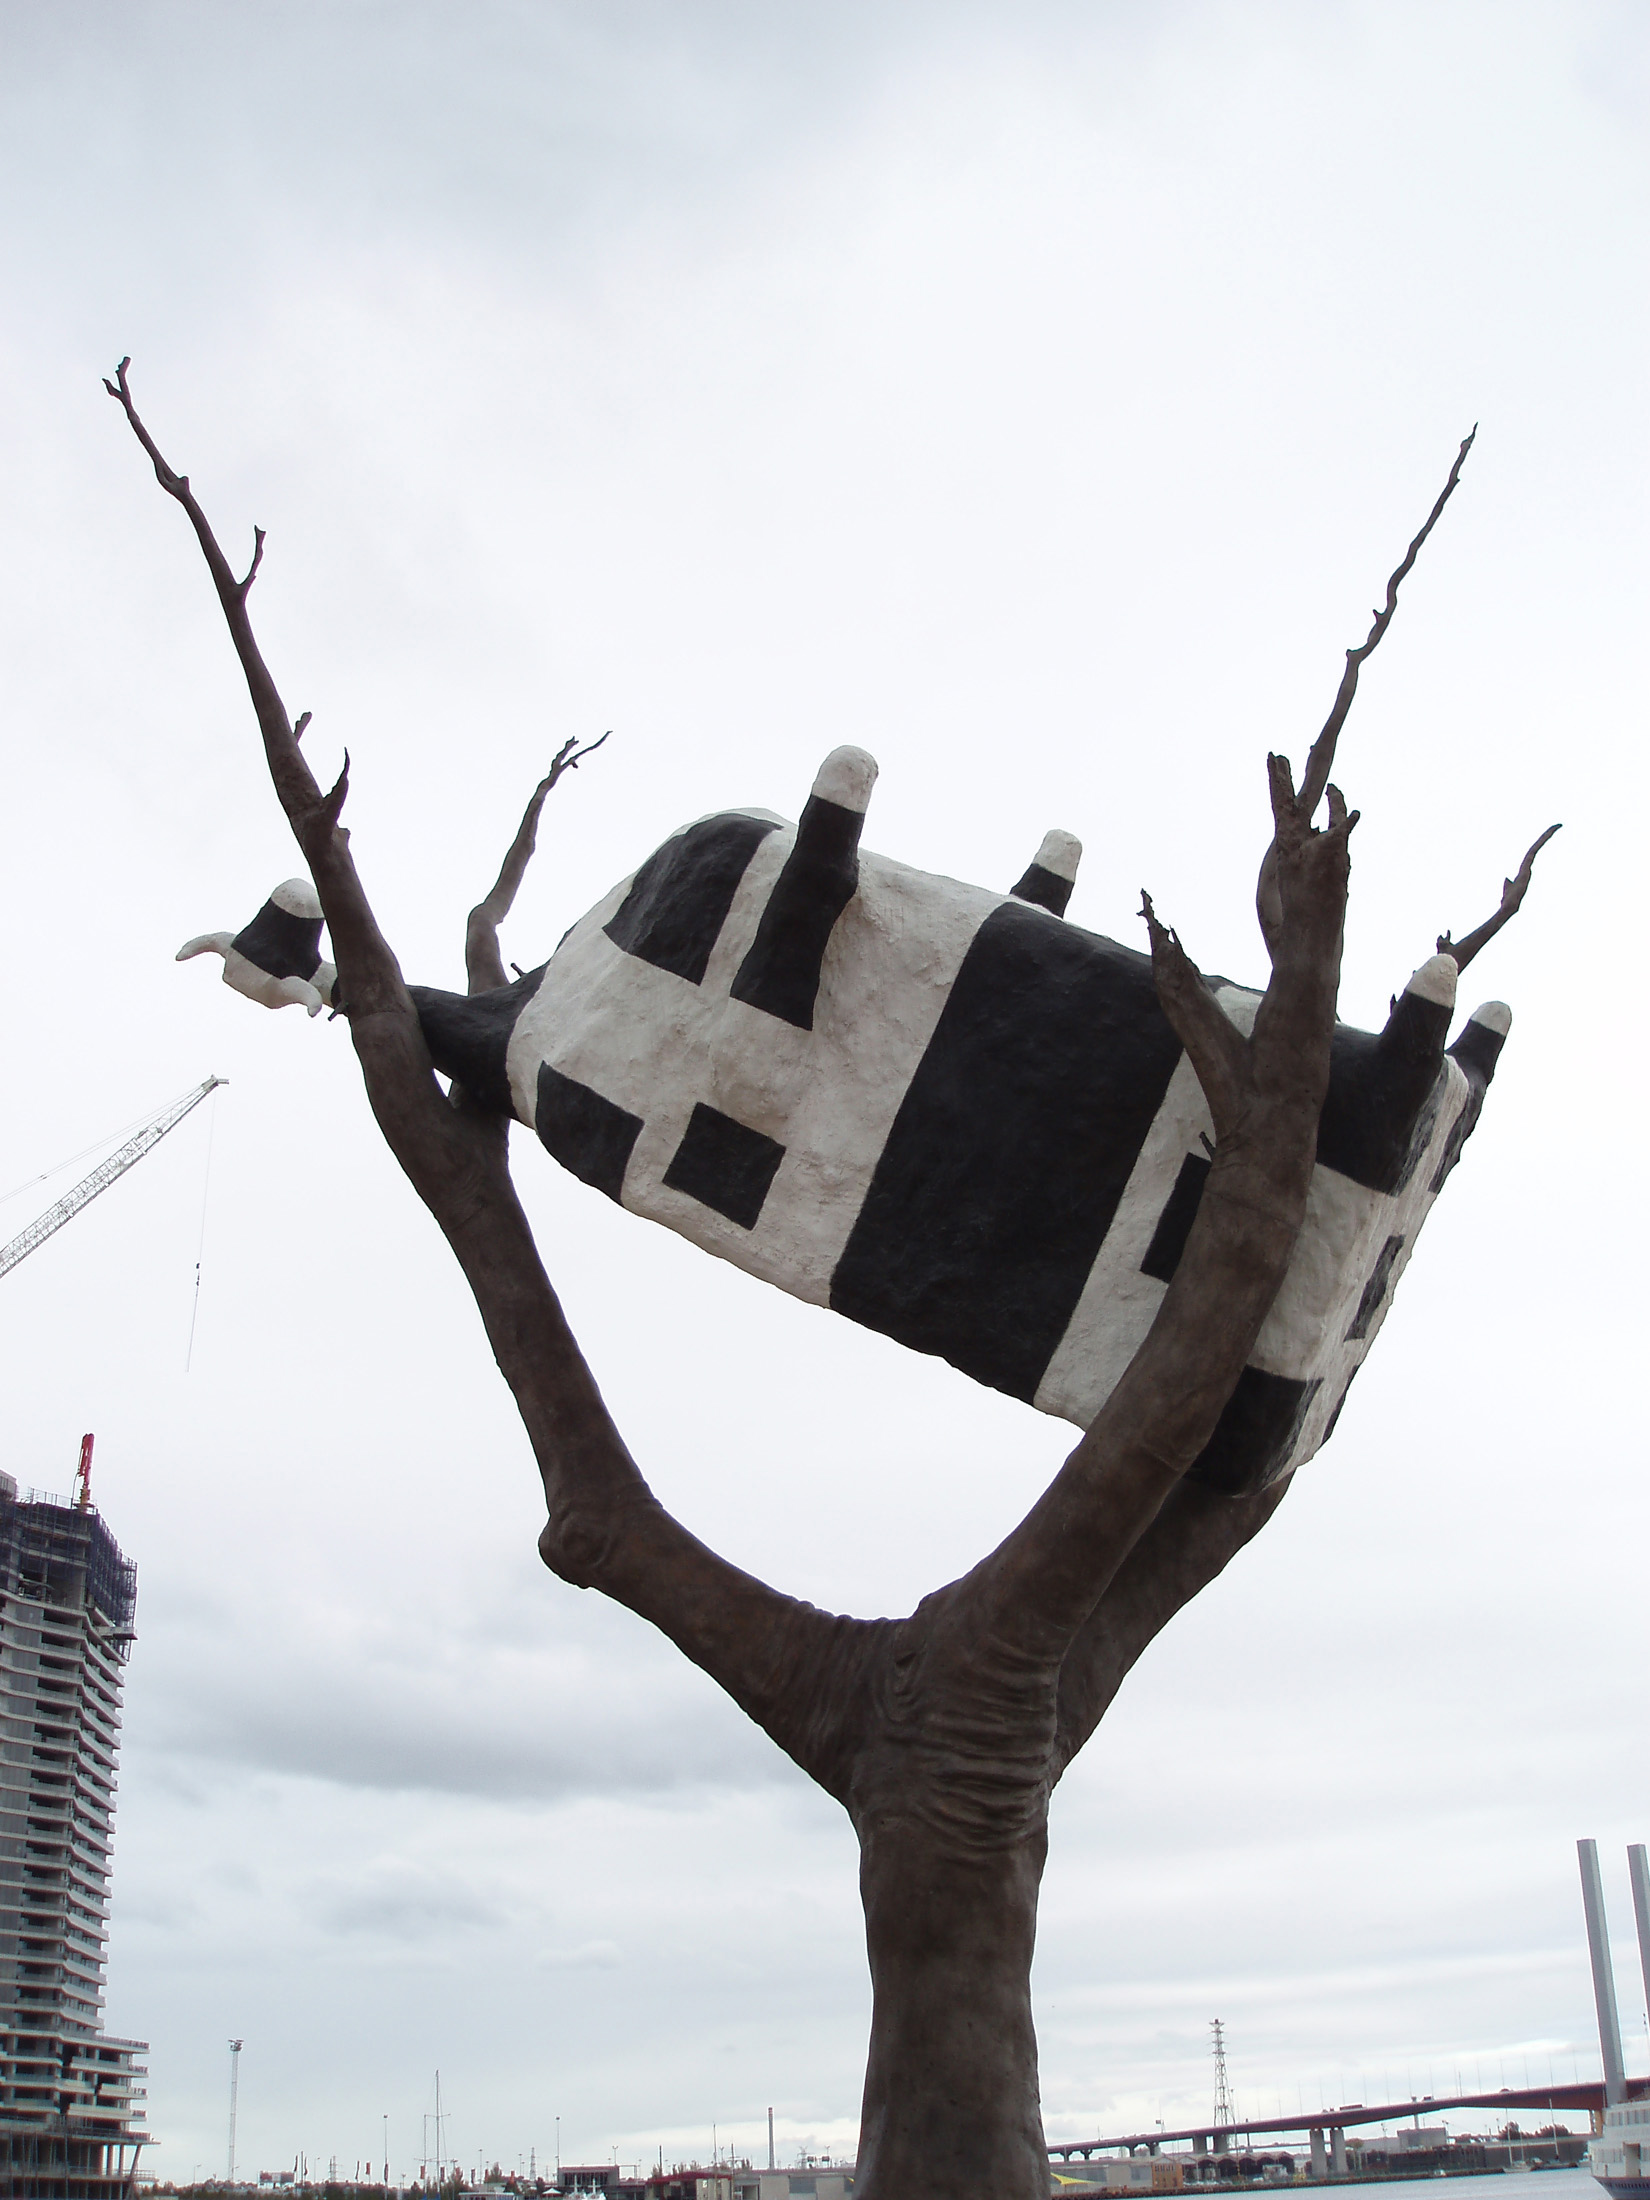 Close up of Famous Landmark of Black and White Cow on an Old Leafless Tree Sculpture in Melbourne Docklands.